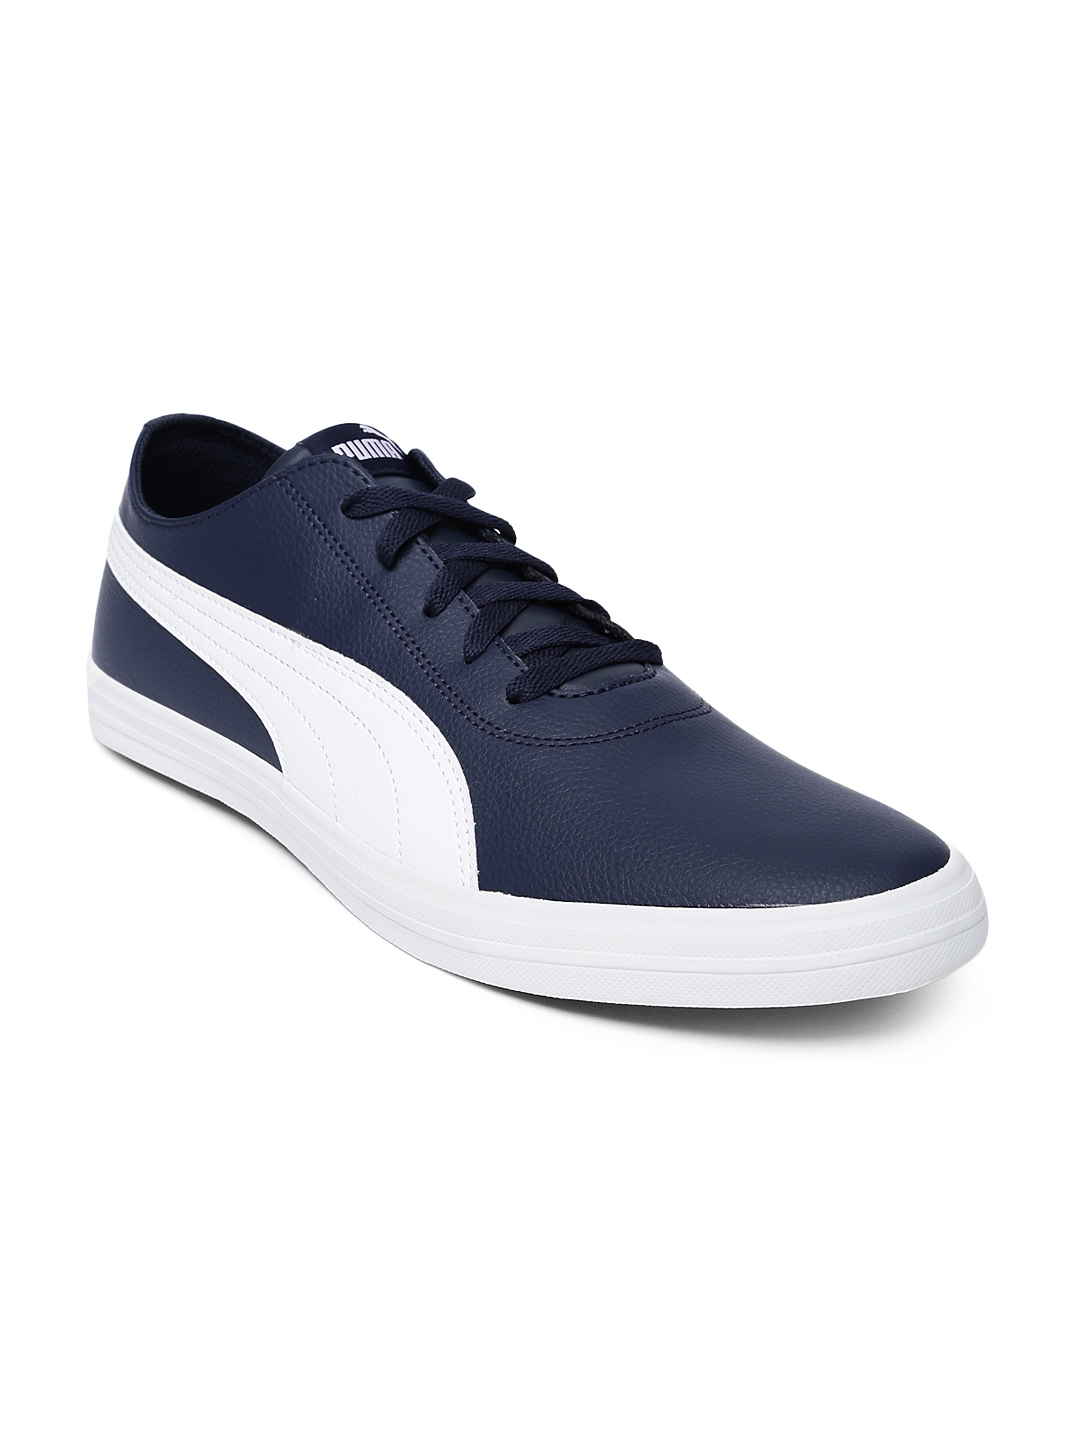 33bd572aa72695 Buy Puma Unisex Navy Blue Urban SL IDP Sneakers - Casual Shoes for ...